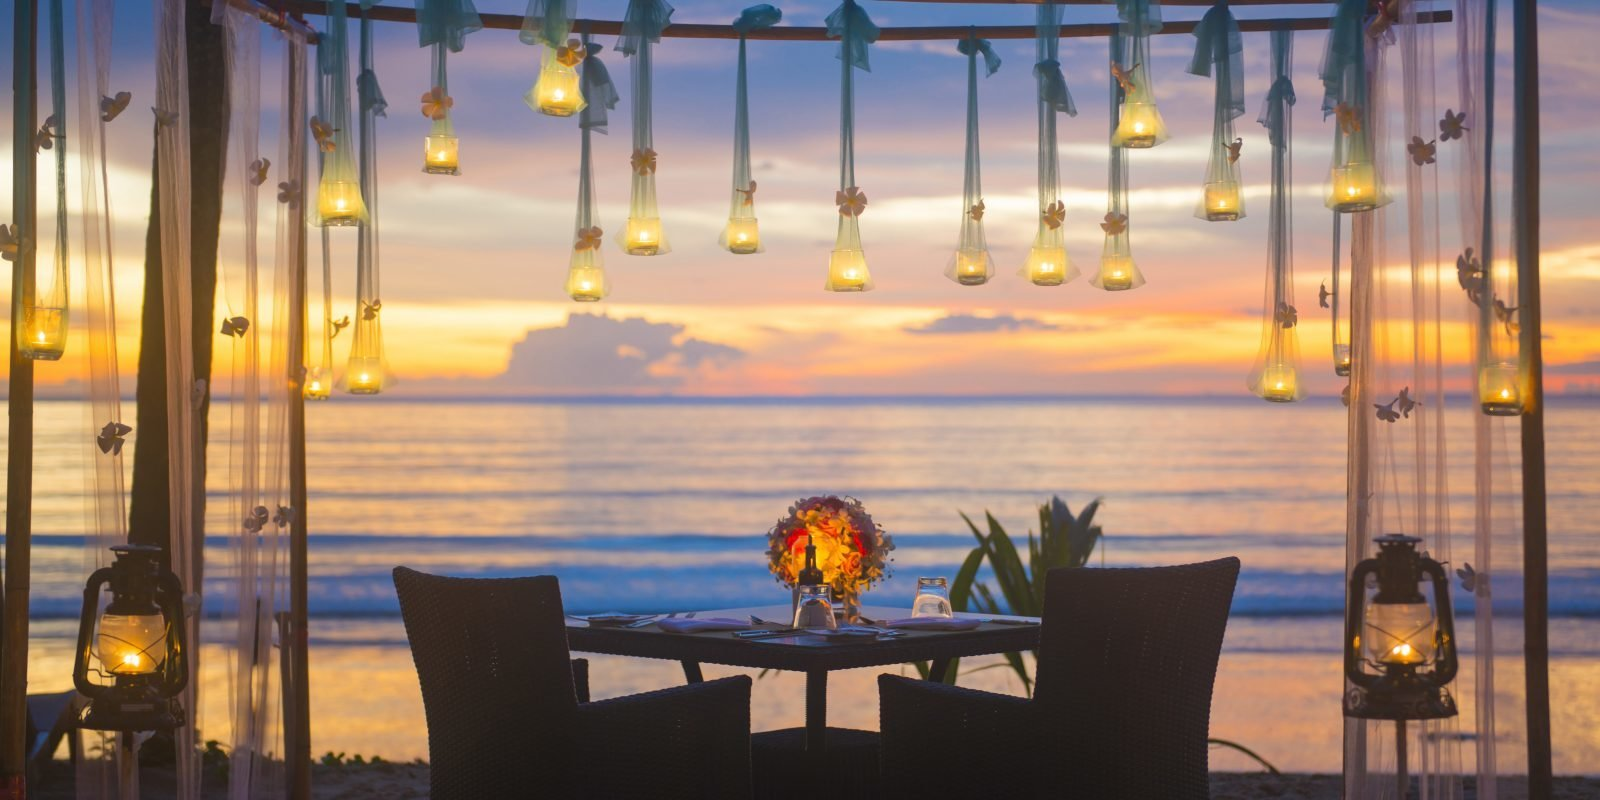 romantic dinner setup on the beach, sunset